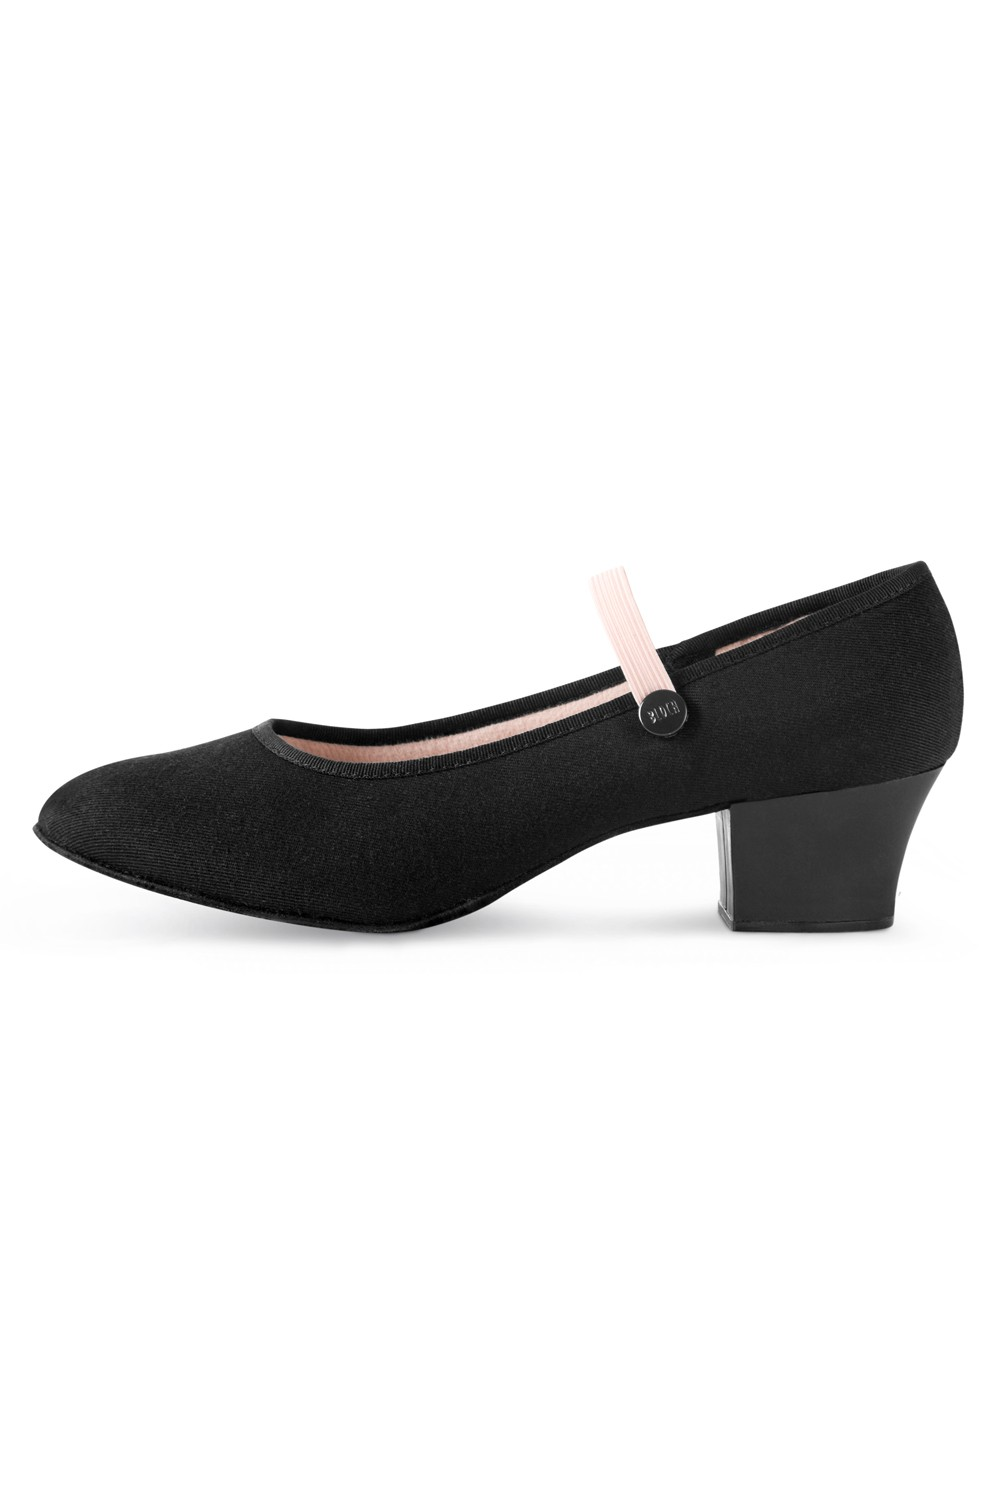 Tempo Accent - Ladies Women's Character Shoes